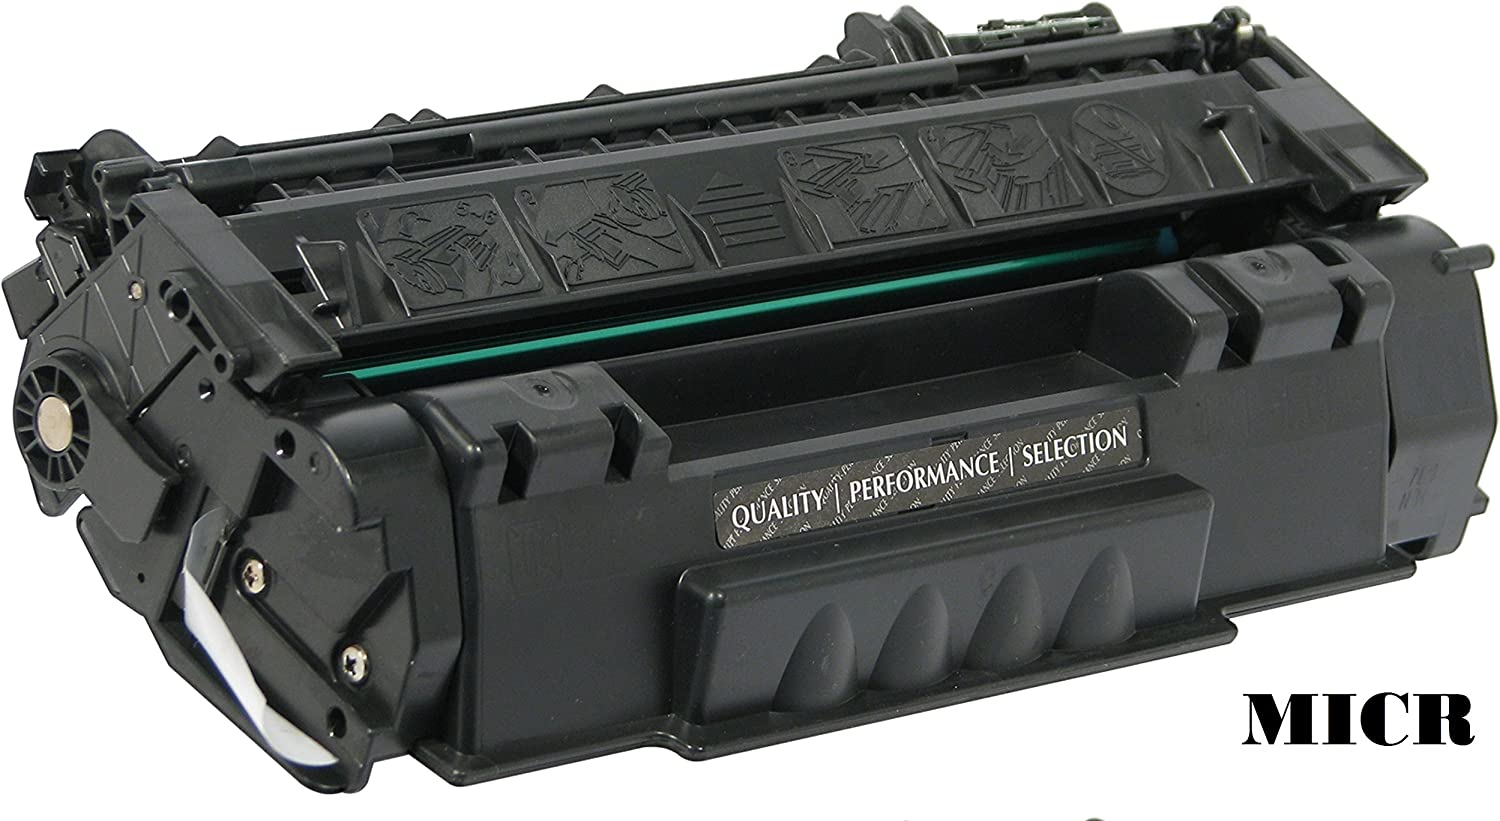 Glb Premium Quality Compatible Replacement für Hp 49ein / Hp Q5949ein Black Laser Toner Cartridge für Hp Laserjet 1160, 1320, 1320N, 1320Nw, 1320Tn, 3390, 3392 Printers(Micr)